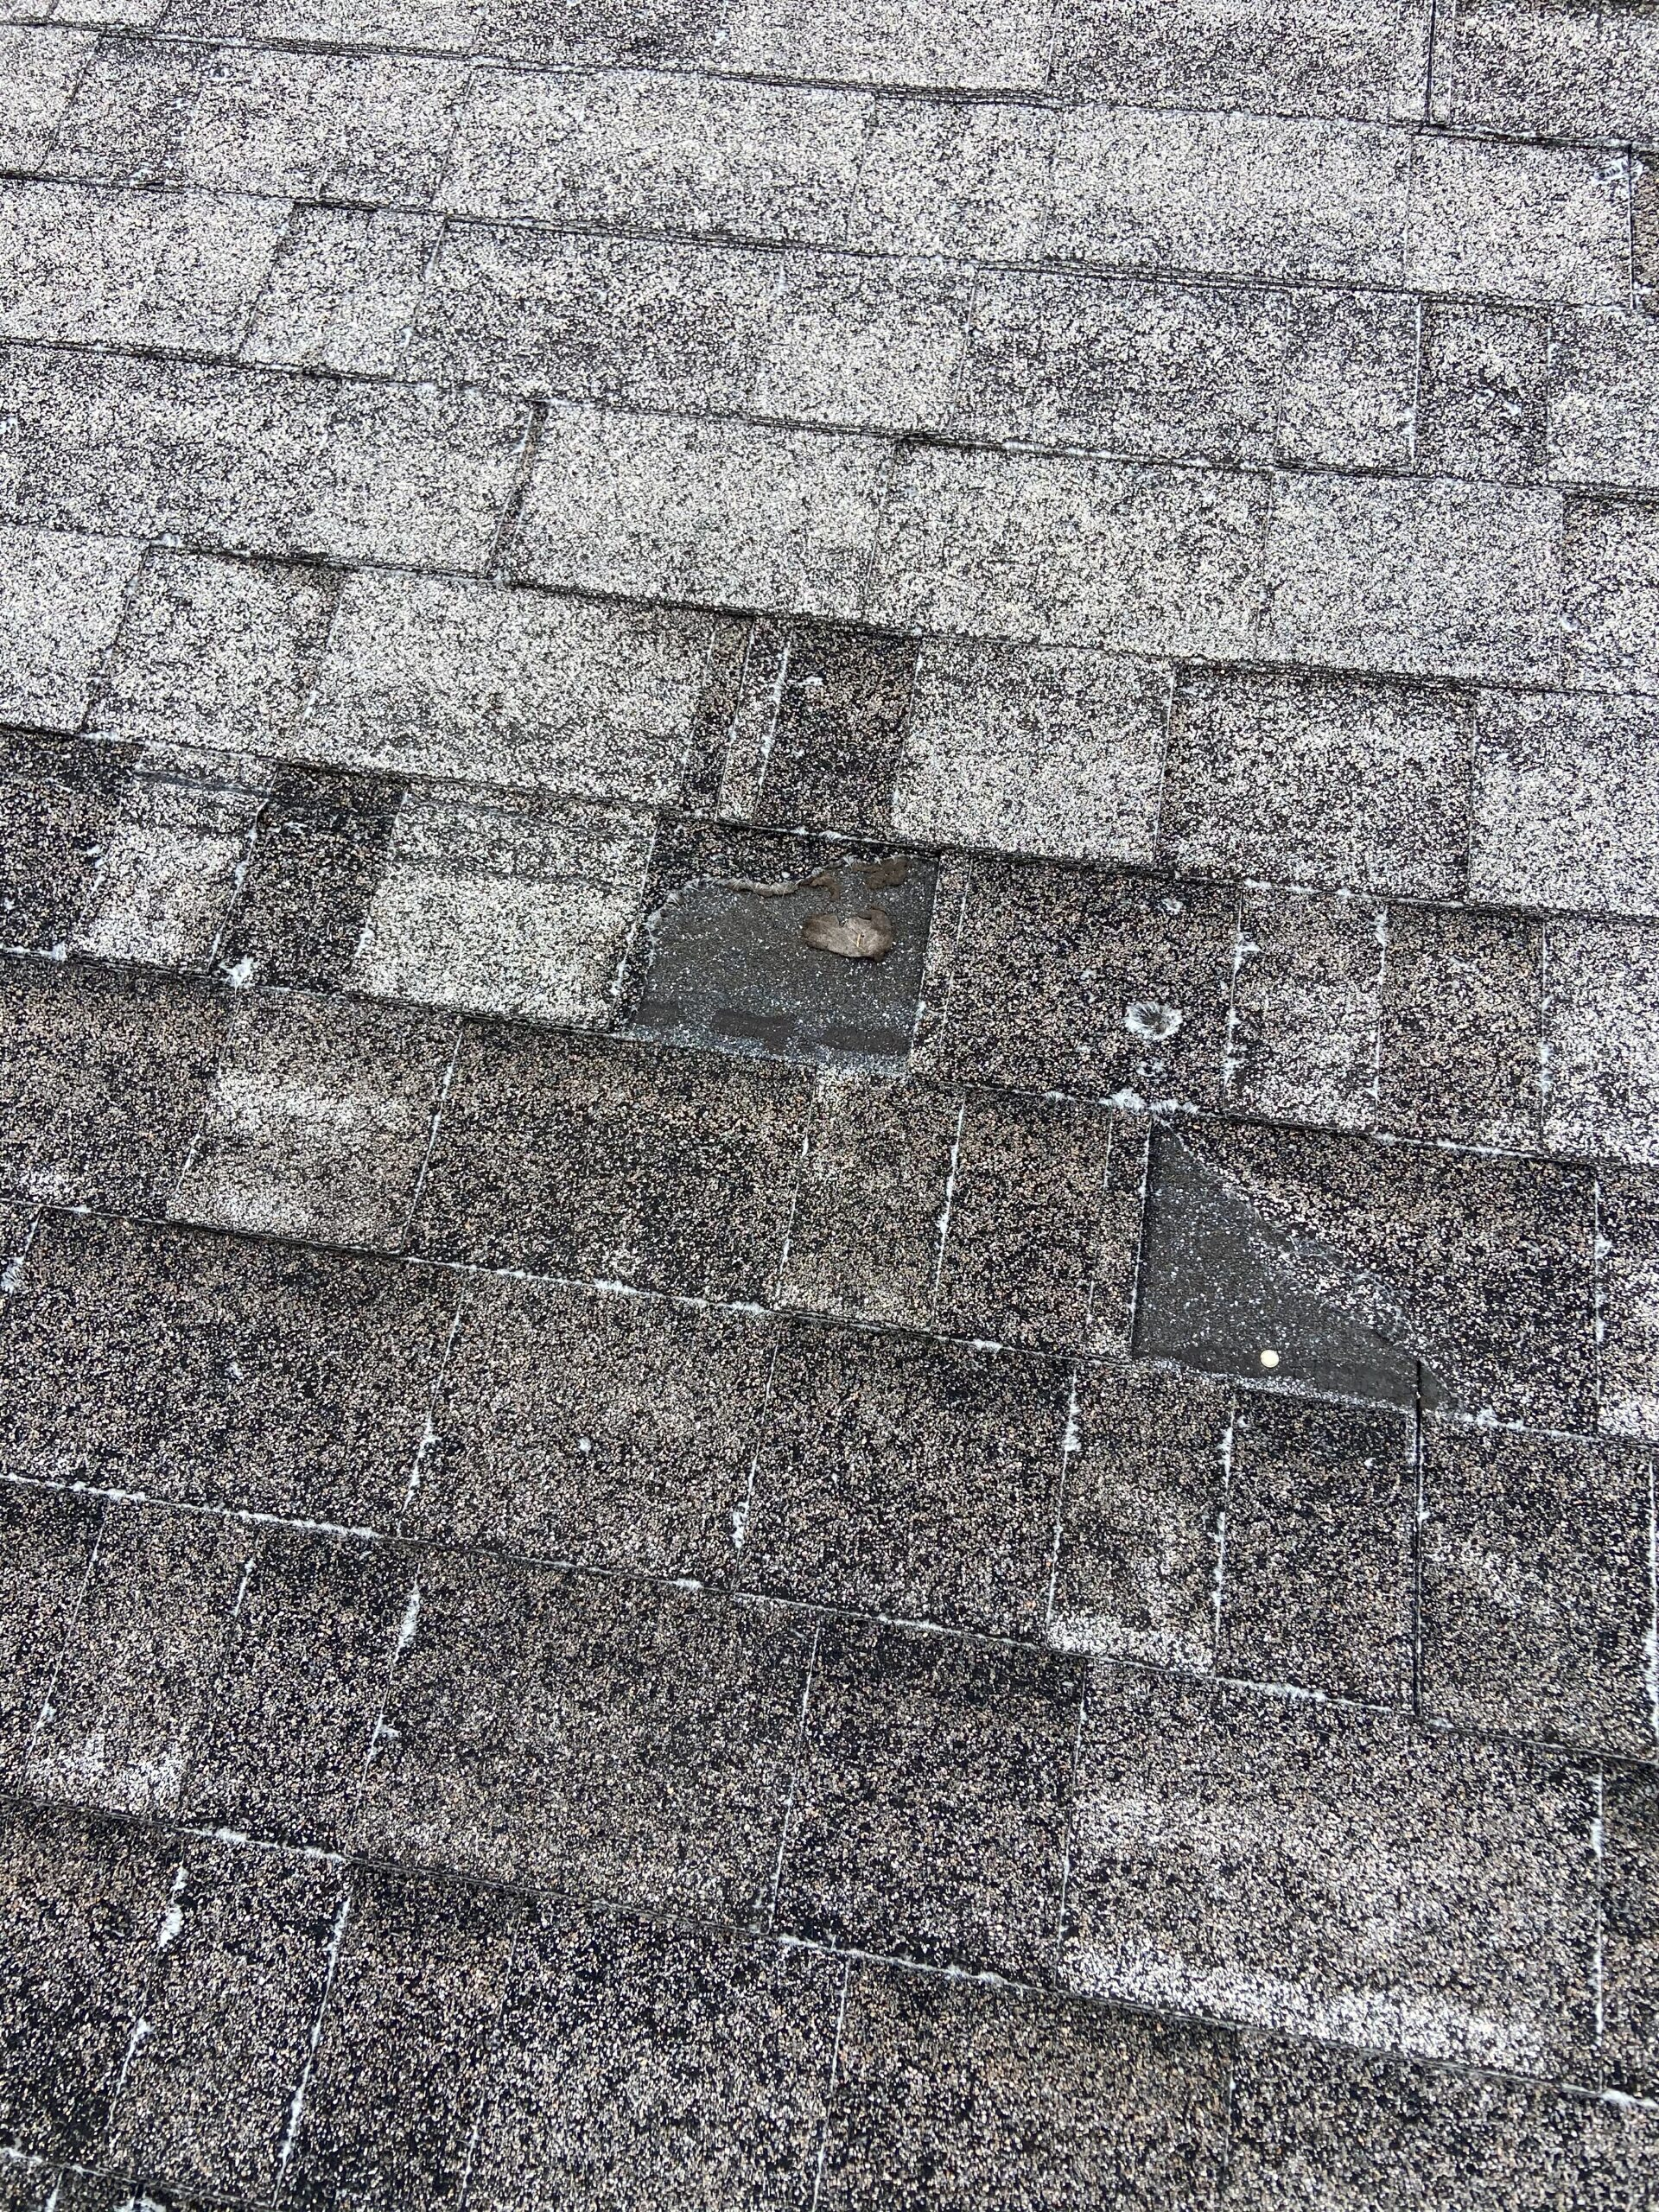 This is a picture of a gray shingles that has storm damage wind and hail